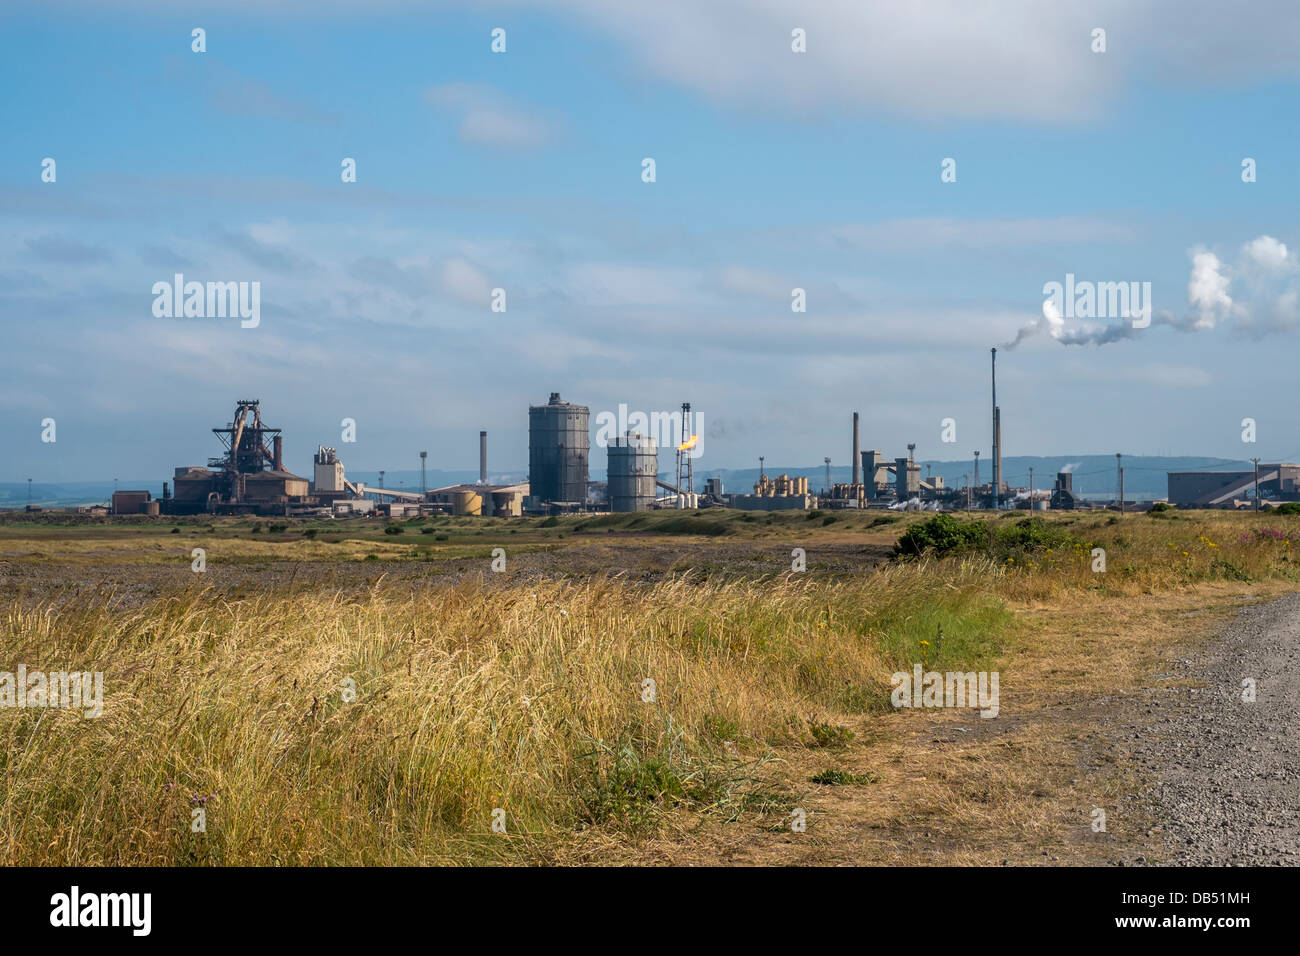 Teesside Steelworks, Redcar owned by Tata Steel - Stock Image